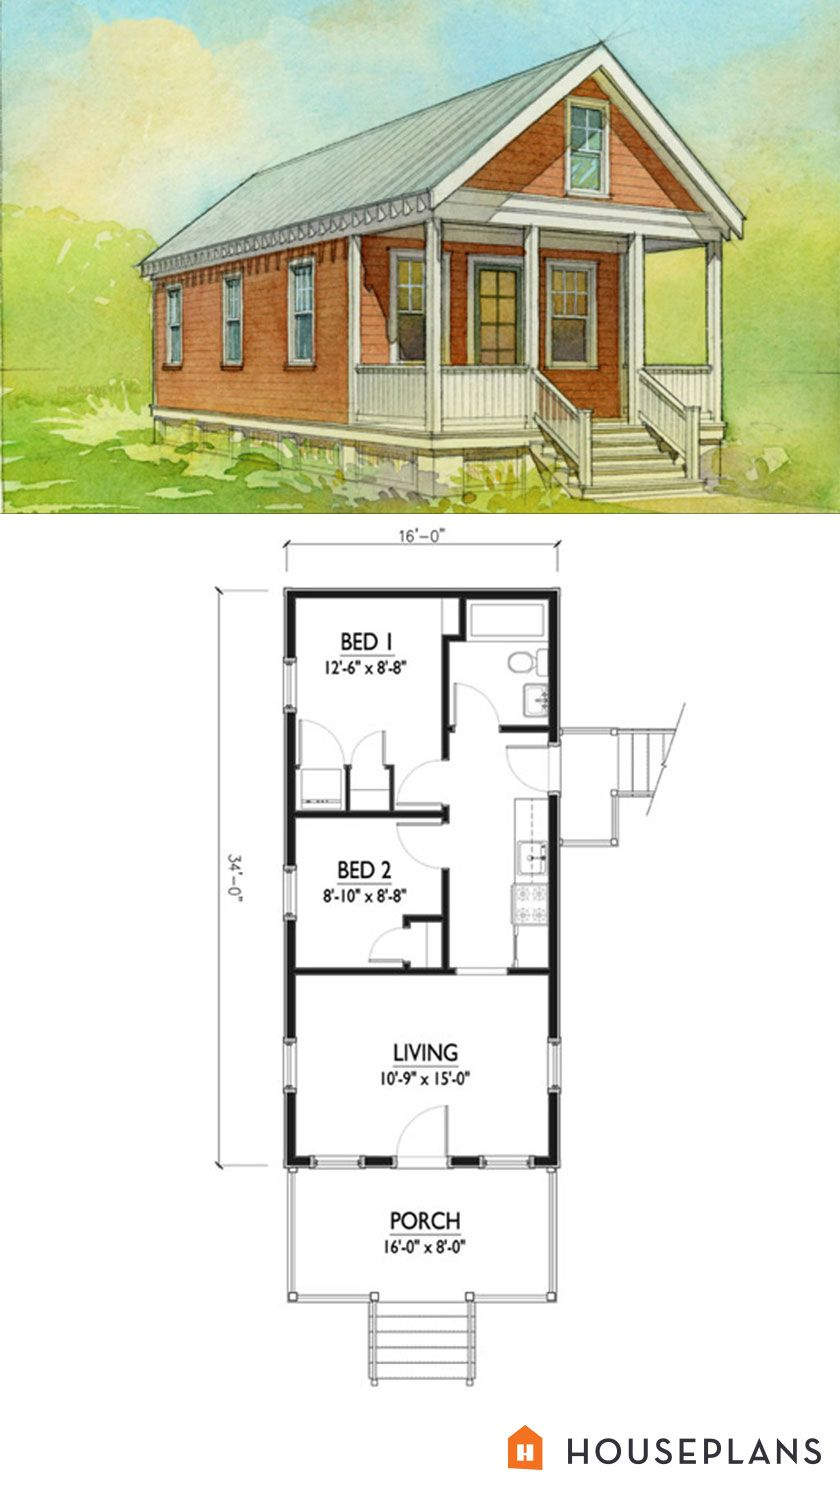 Small katrina cottage house plan 500sft 2br 1 bath by for Tiny home designs plans